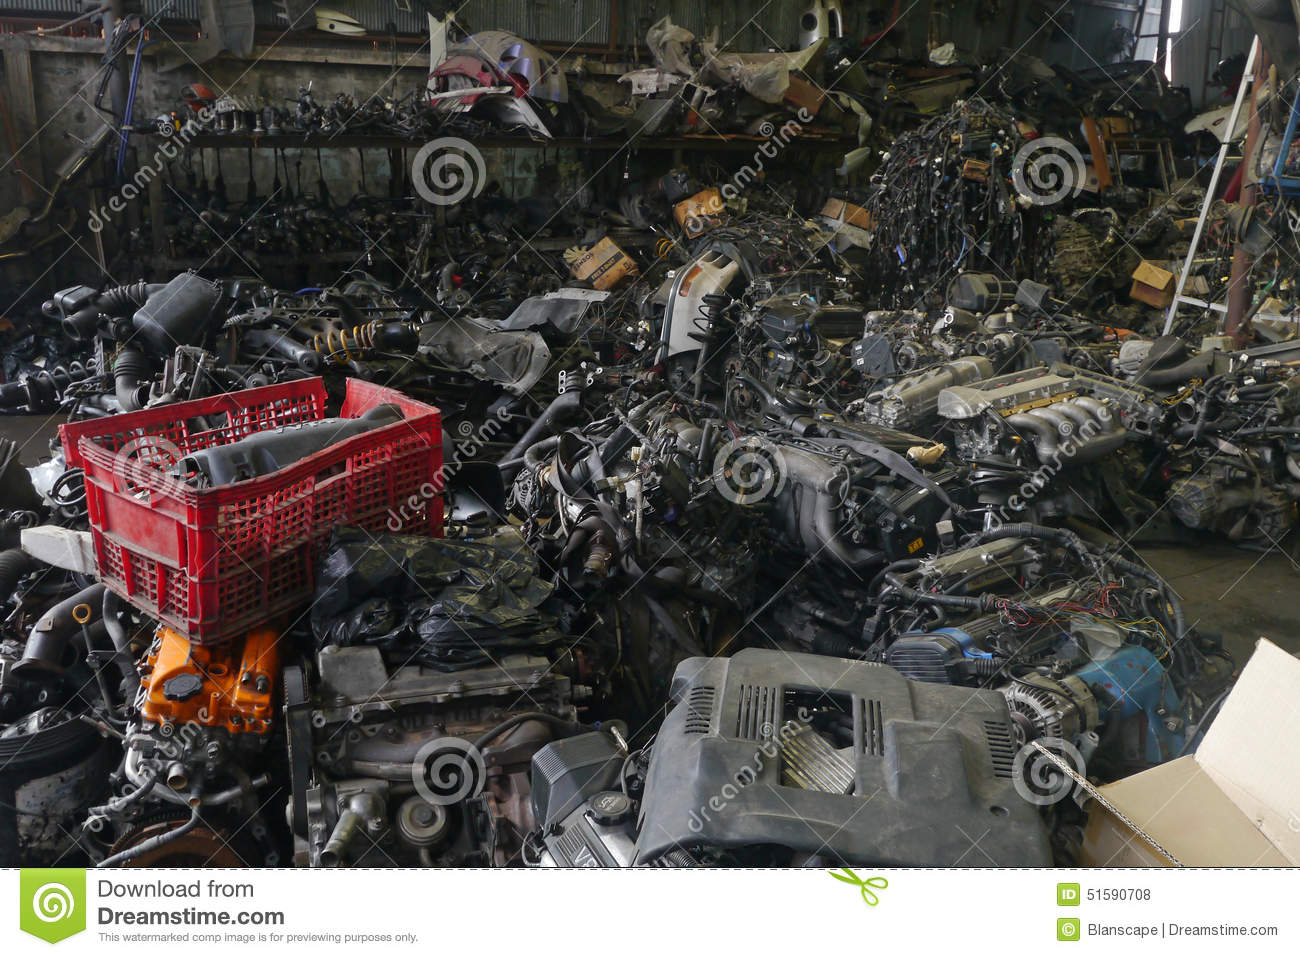 Locomotive Spare Parts : Old rusty car engine royalty free stock photography